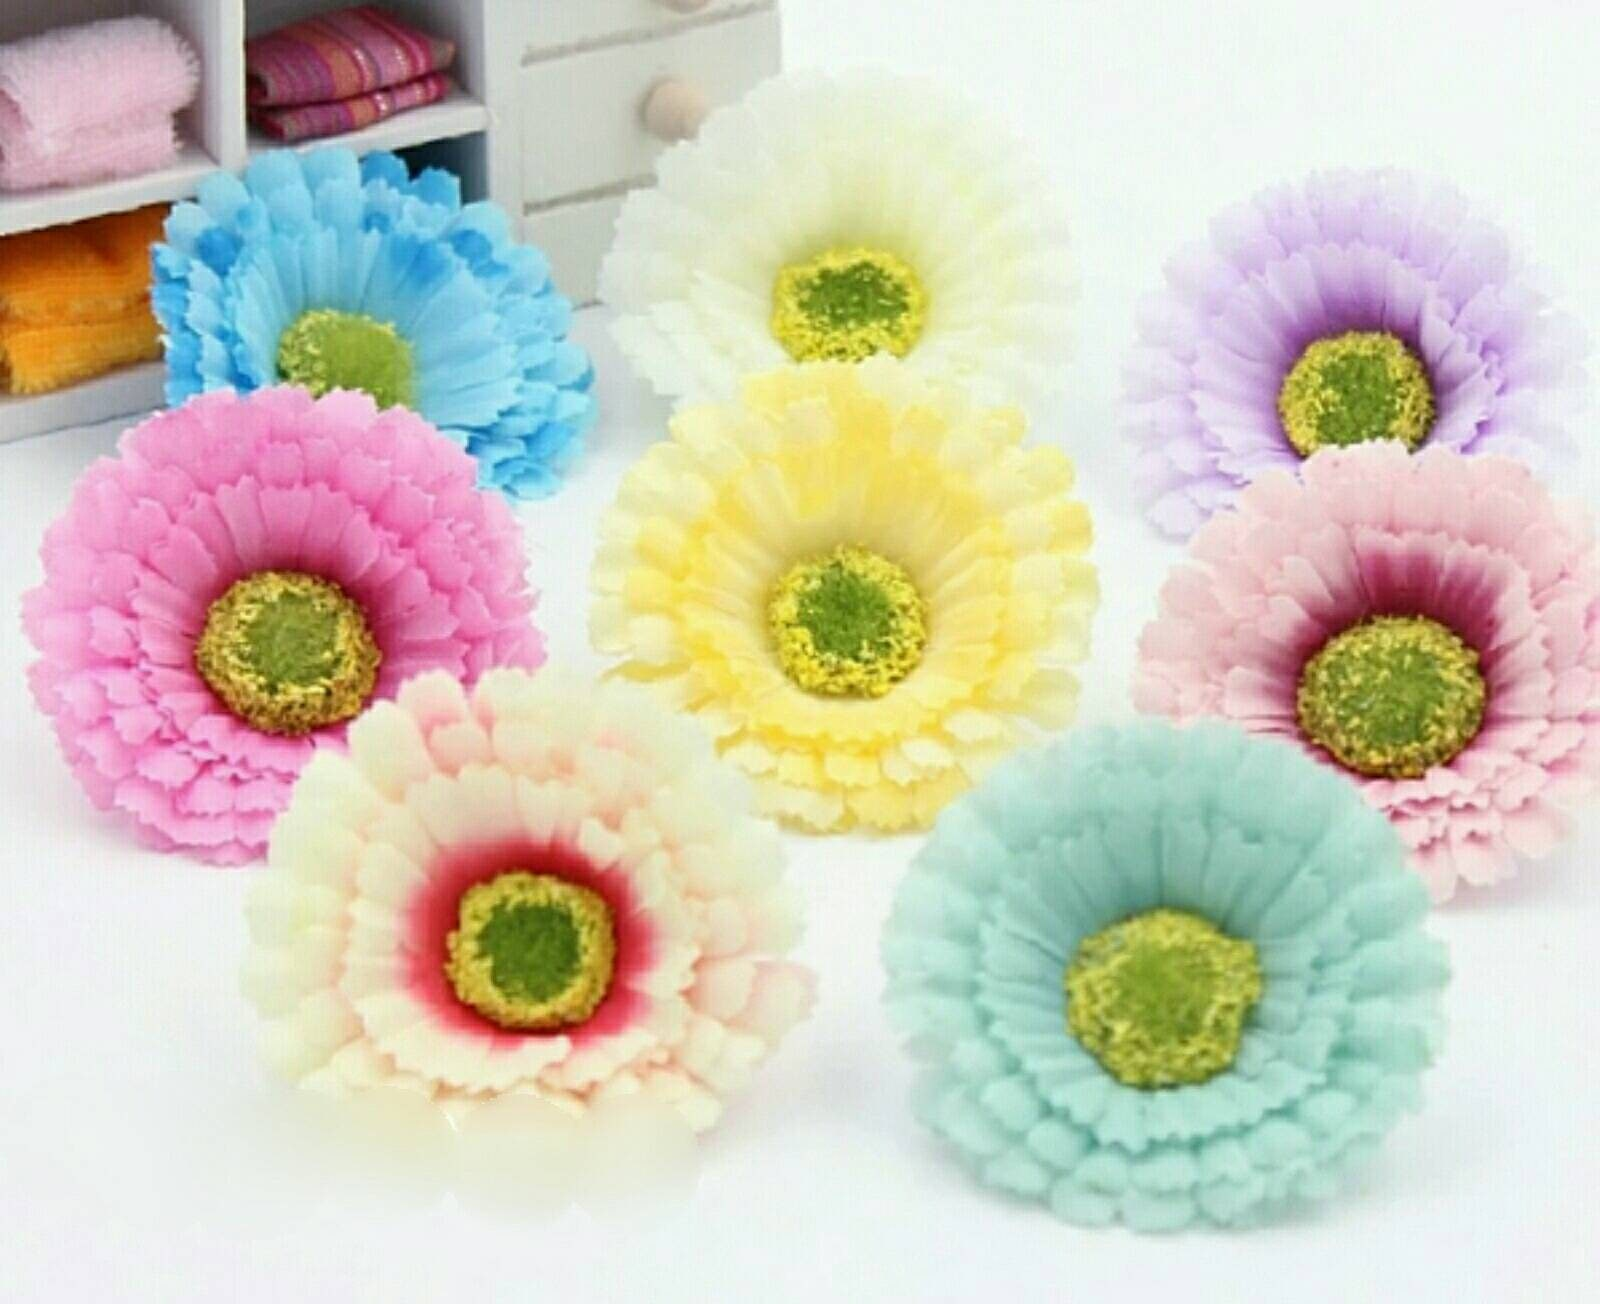 Fake Daisy Flowers Head For Crafting Purposes